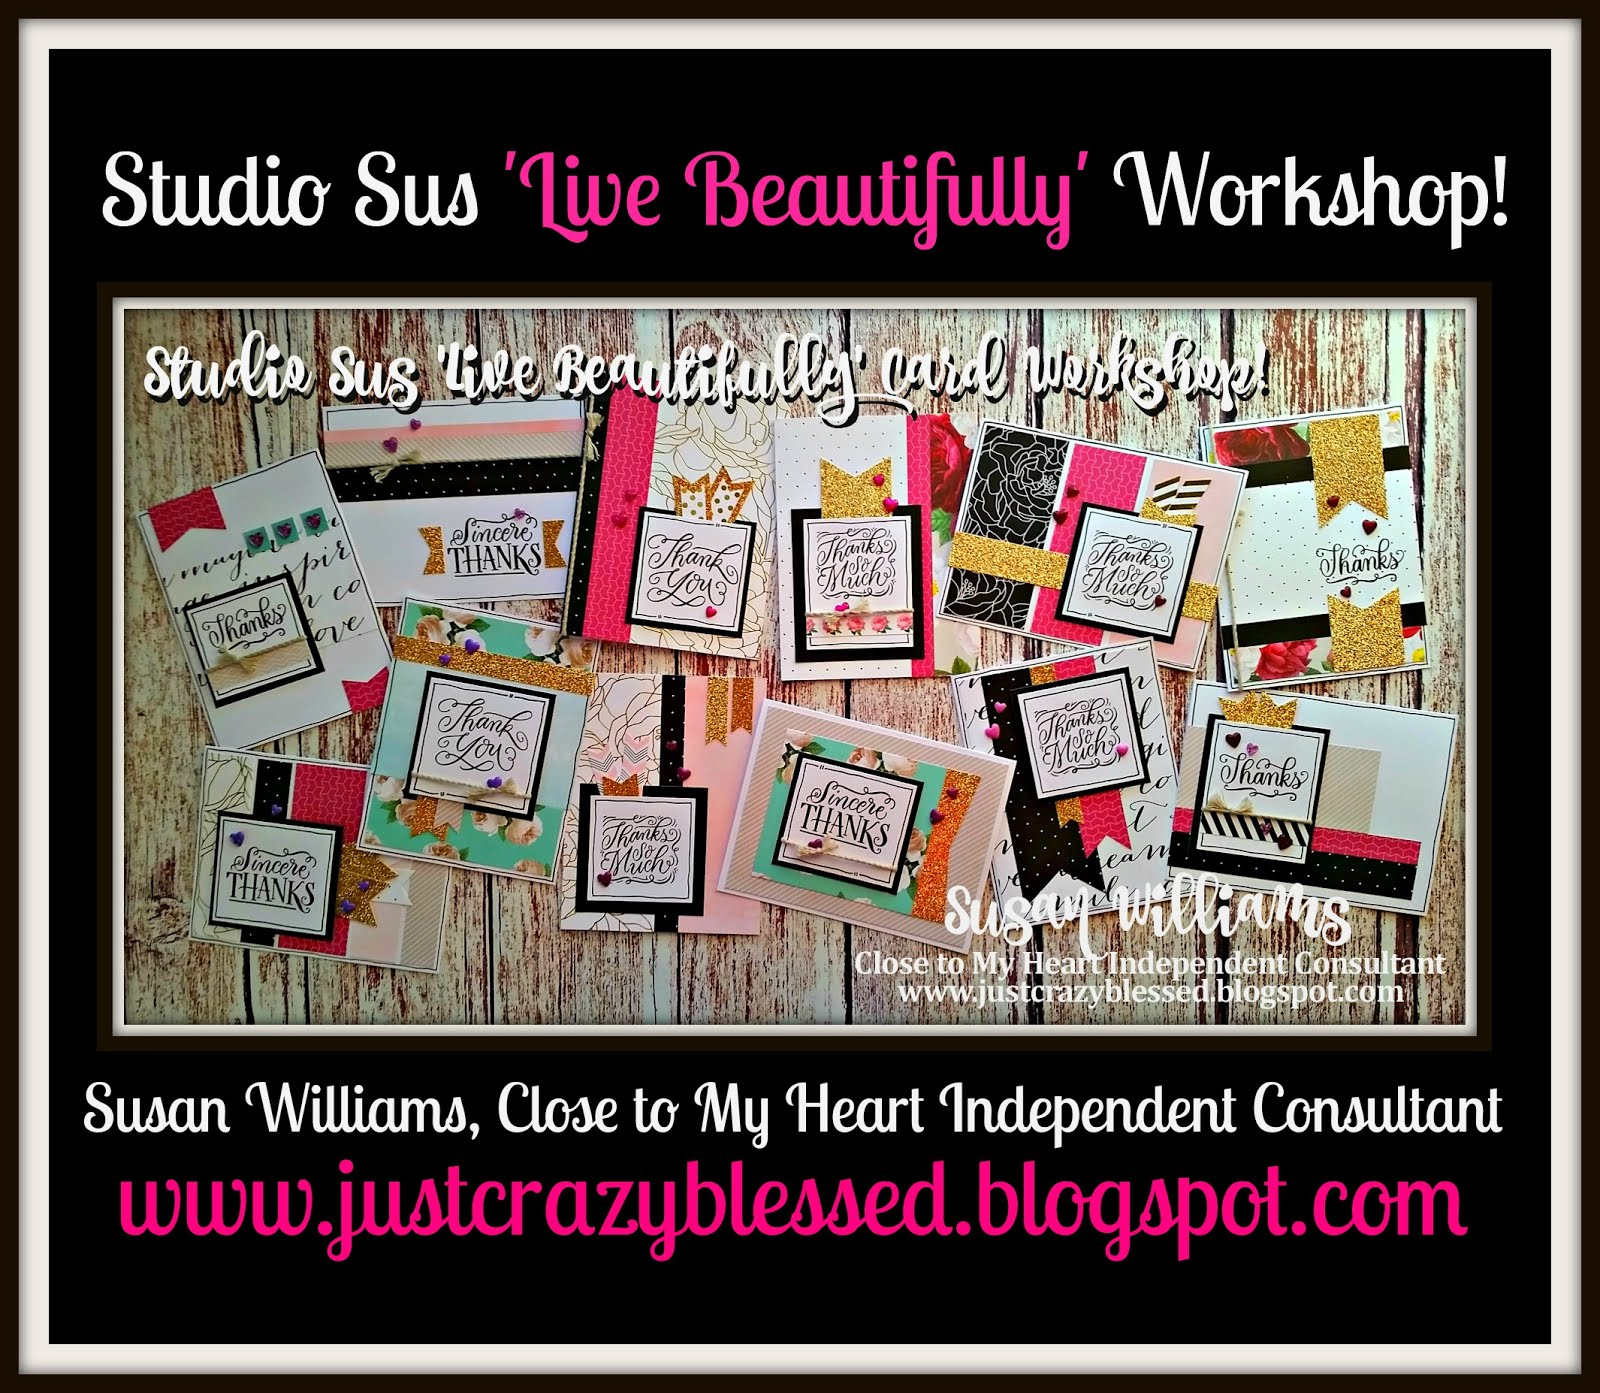 'Live Beautifully' Cardmaking Workshop!